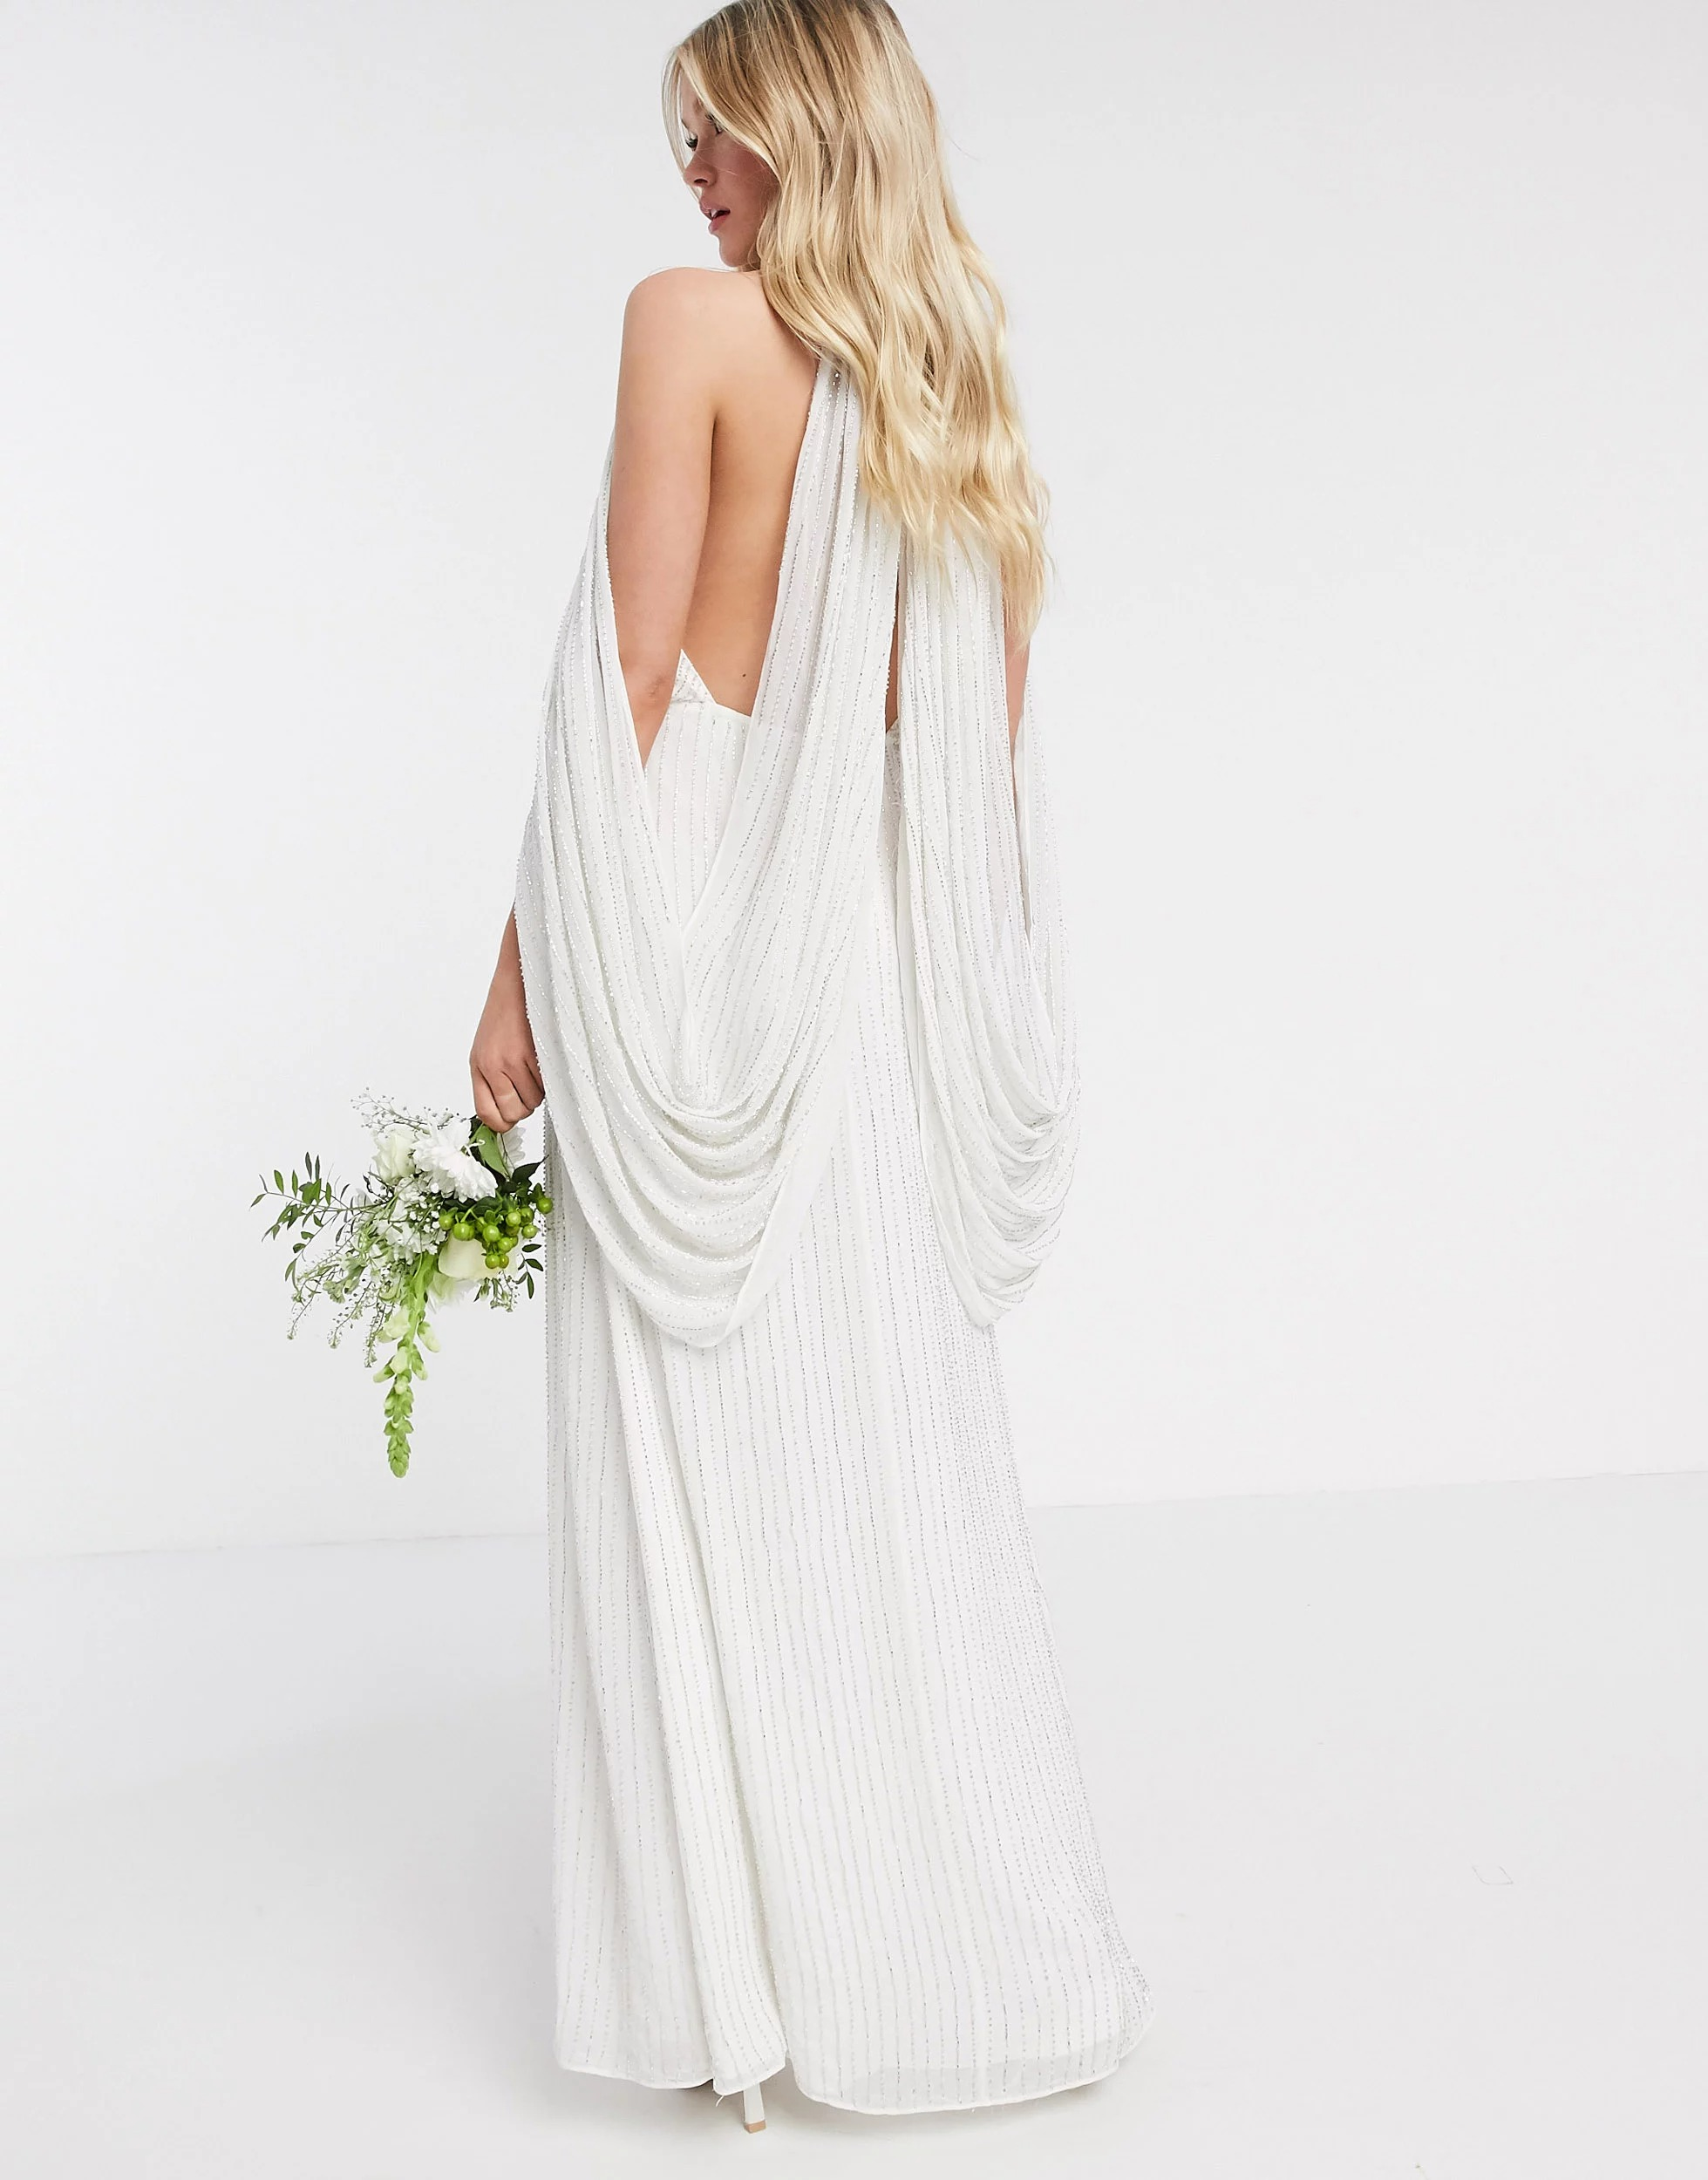 wedding dress with cape sleeves attached